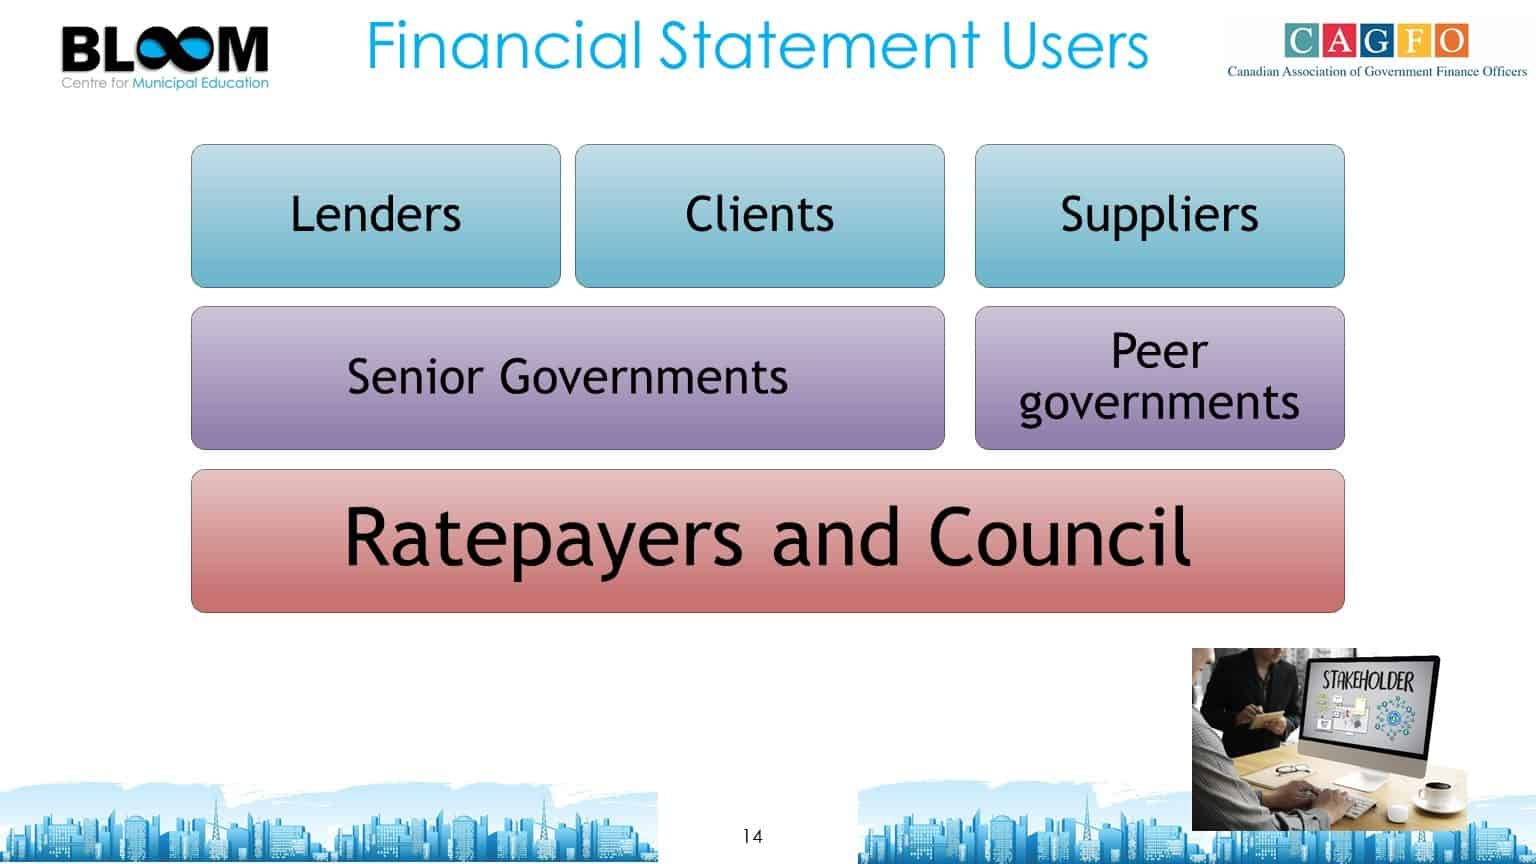 Financial Statement Users